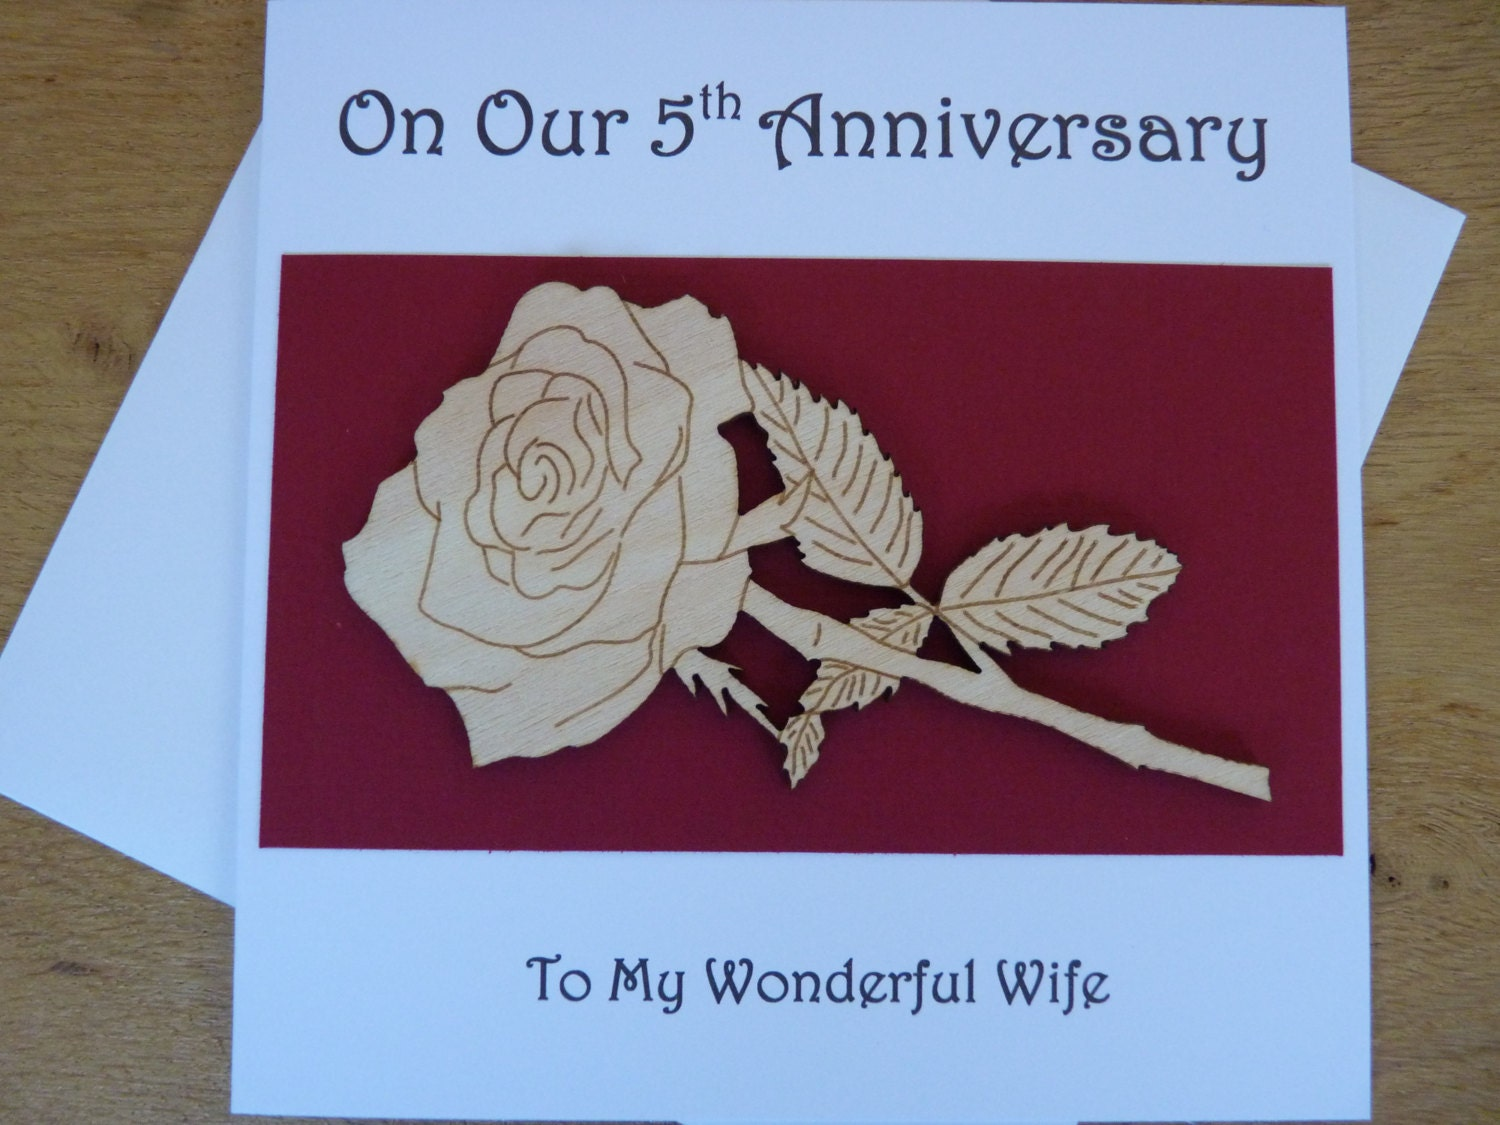 5th Wedding Anniversary Gift Ideas For Wife: 5th Wedding Anniversary Card 5th Anniversary Card Card For